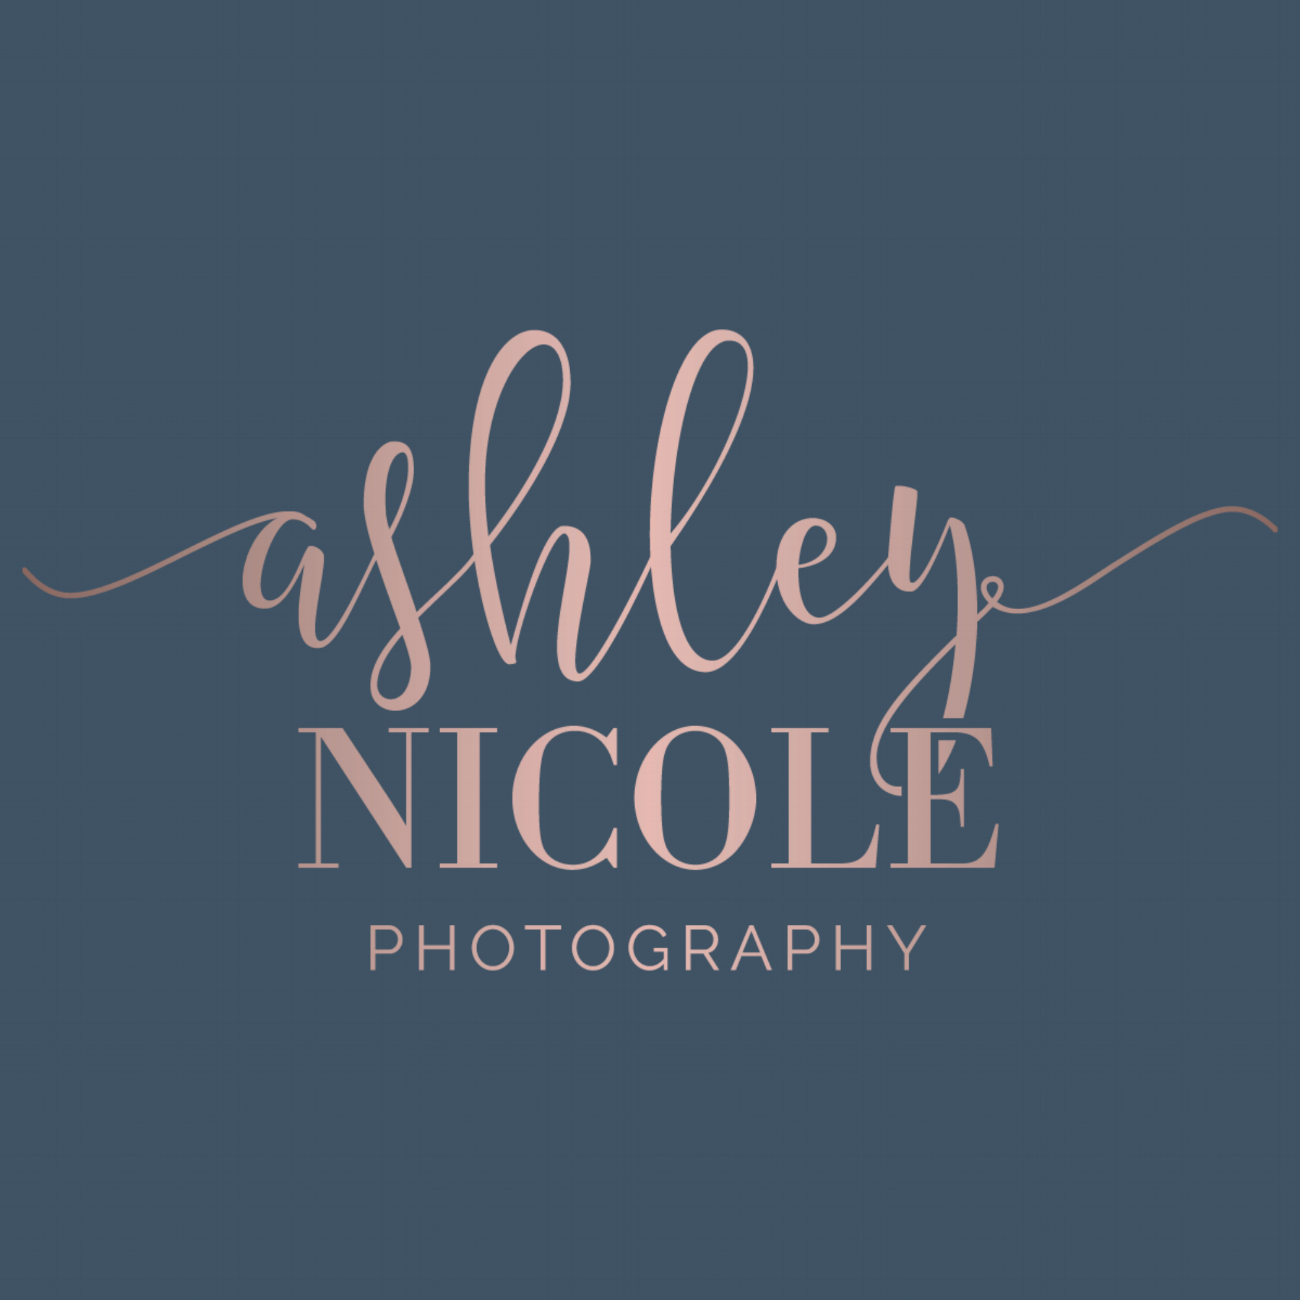 Ashley Nicole Photography